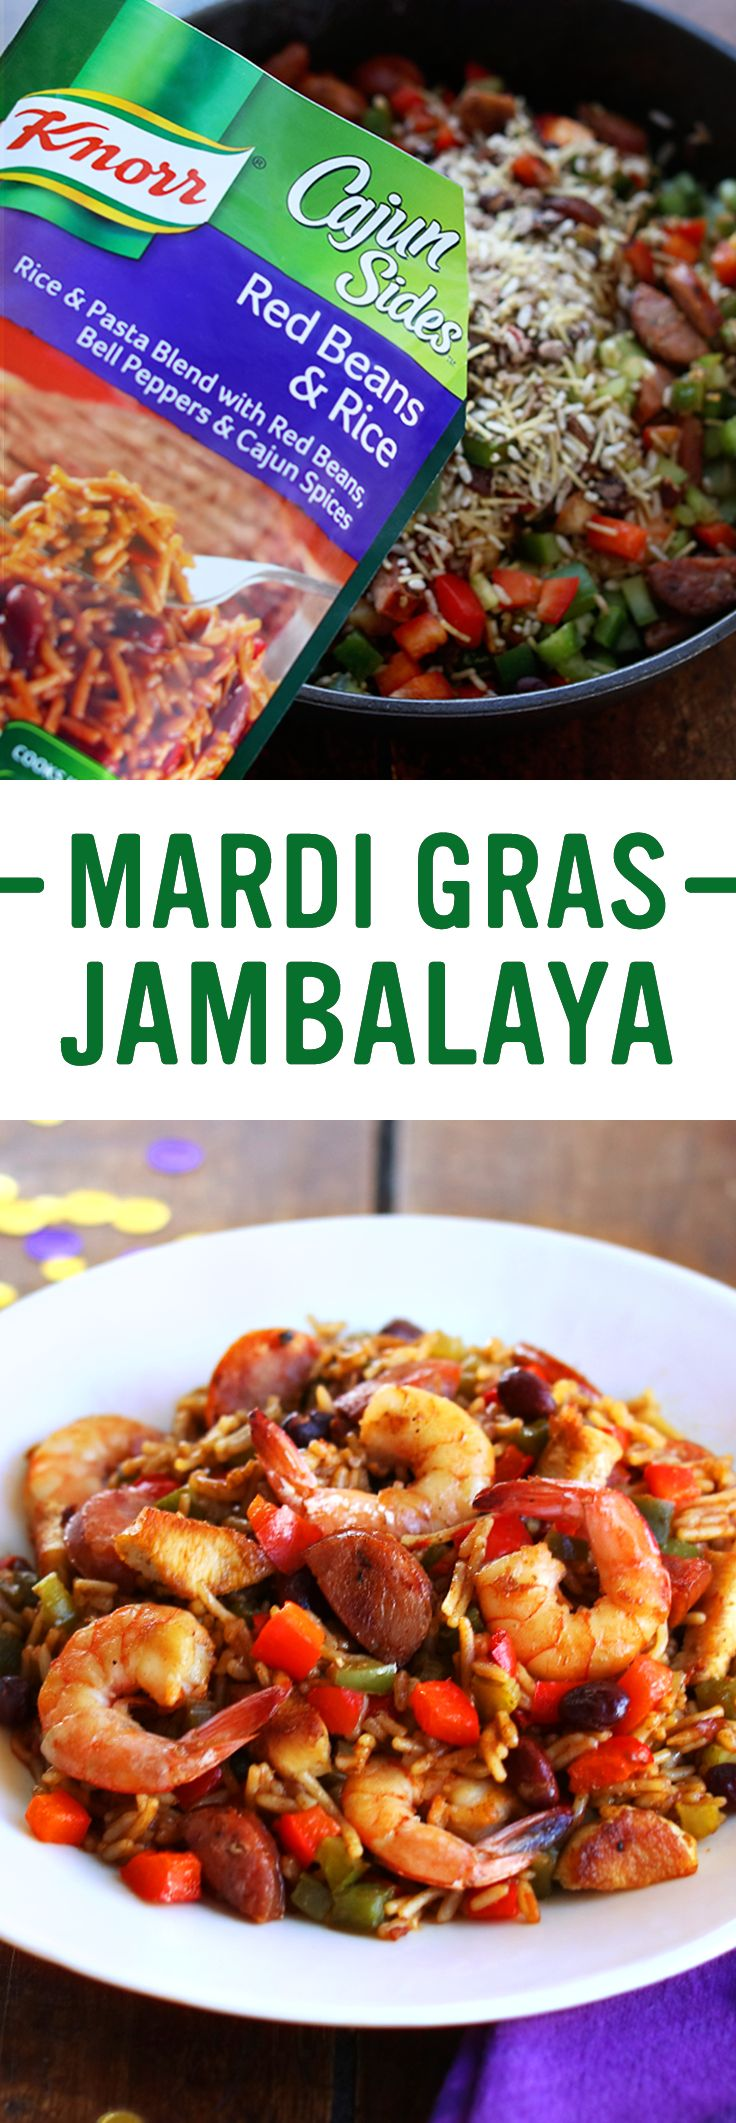 Step up to a flavorful, homemade, single skillet, family dinner idea with Knorr's Mardi Gras Jambalaya! Make this easy New Orleans Creole favorite in under 30 minutes tonight: 1. Cook shrimp & set aside 2. Cook chicken & sausage Combine with shrimp 3. Add celery & peppers 4. Stir in Knorr® Cajun Sides™ - Red Beans & Rice. Serve & let the good times roll!